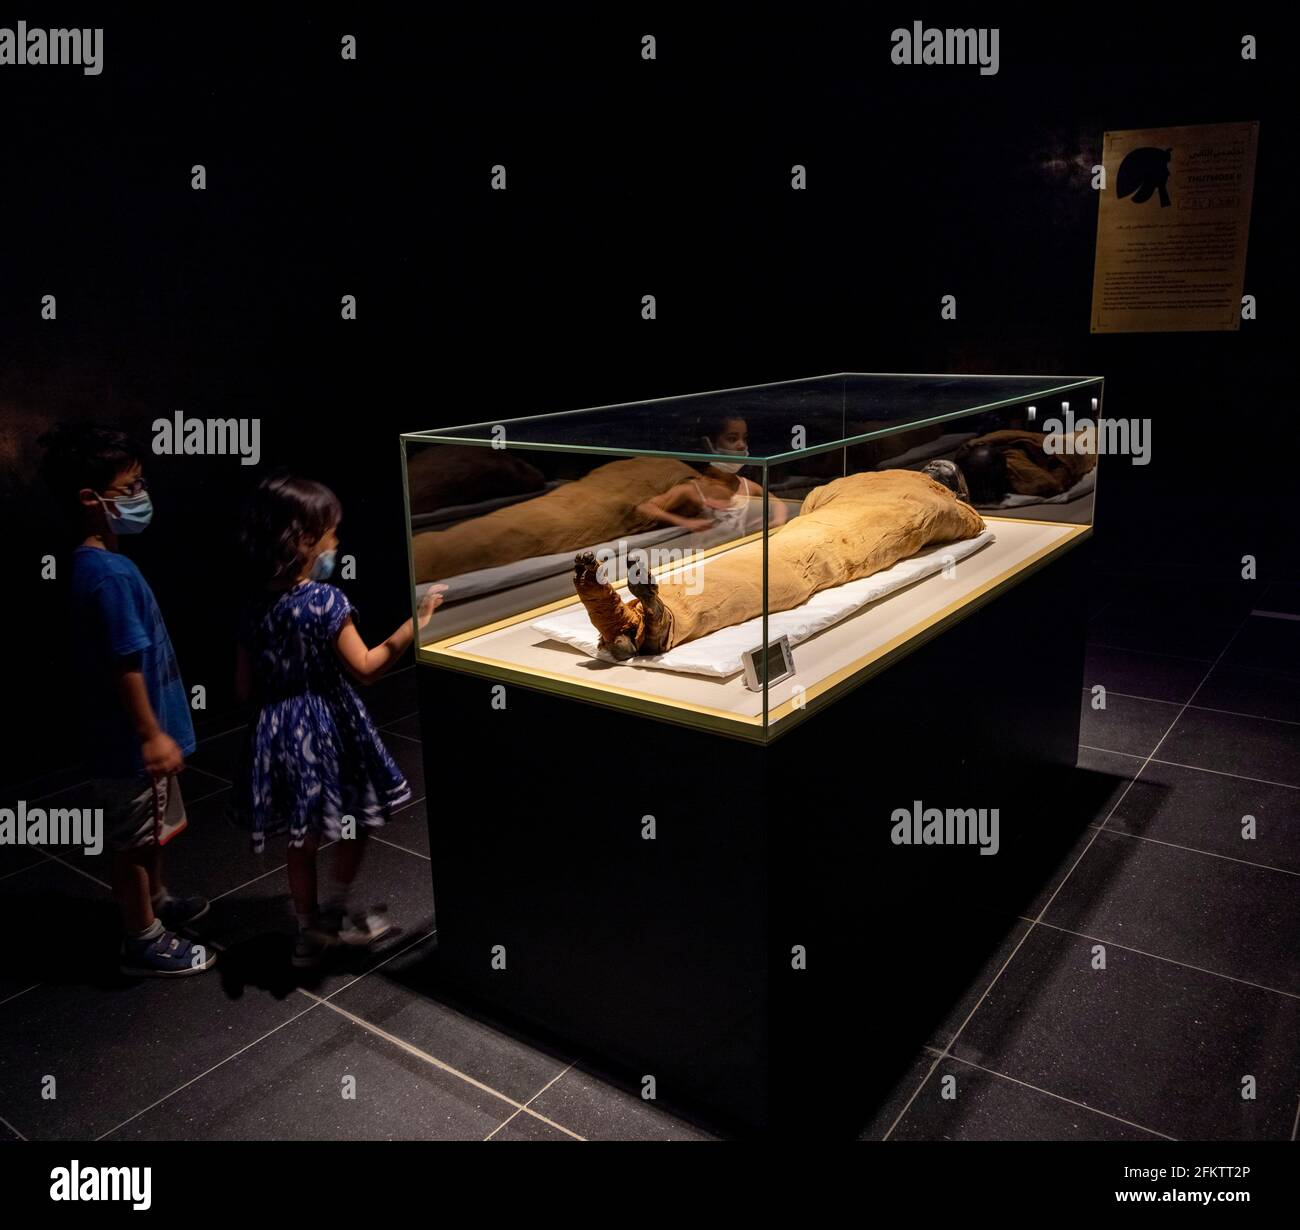 children looking at mummy of King Thutmose II (died 1479 BCE), National Museum of Egyptian Civilization Stock Photo